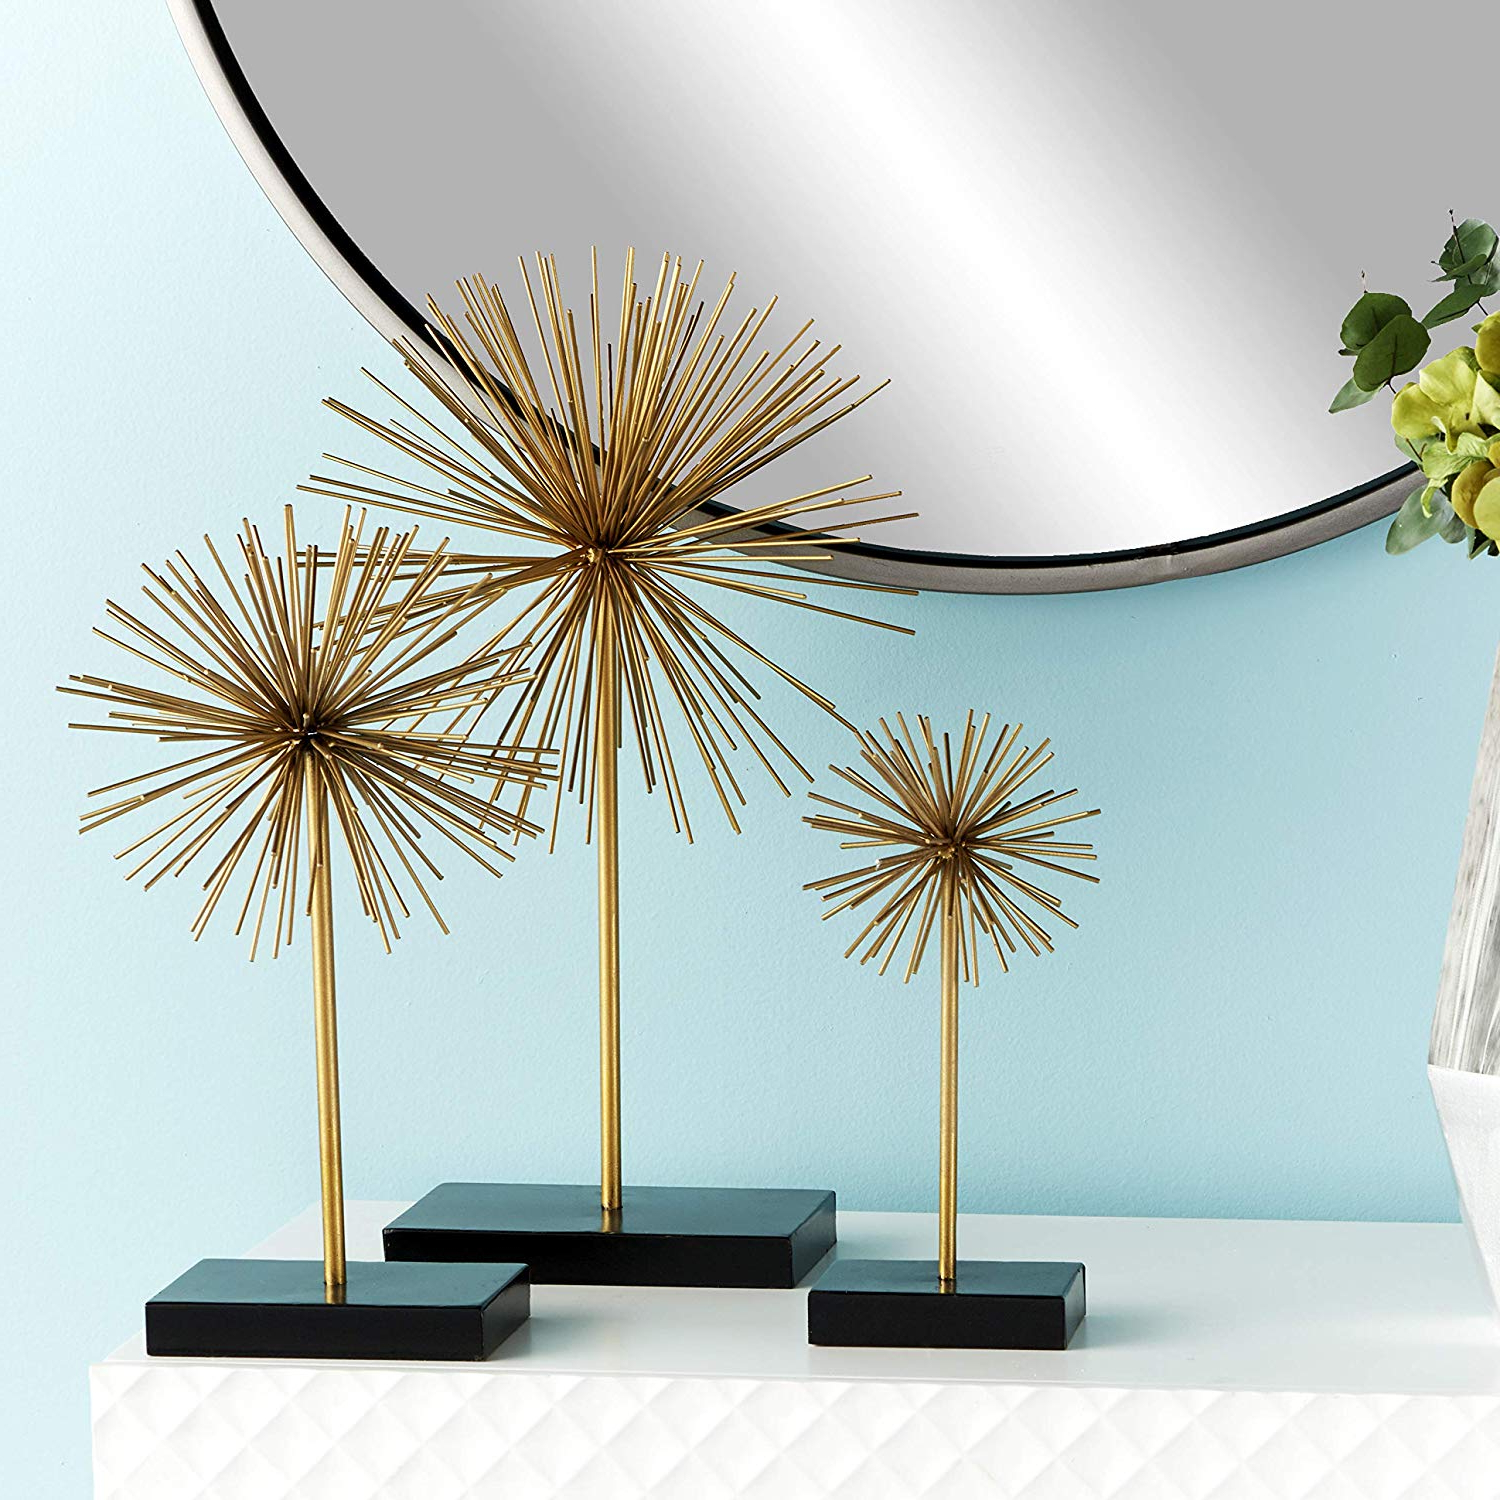 Amazon: Deco 79 50384 Tall Contemporary Style 3D Round Gold Intended For Recent Set Of 3 Contemporary 6, 9, And 11 Inch Gold Tin Starburst Sculptures (View 4 of 20)